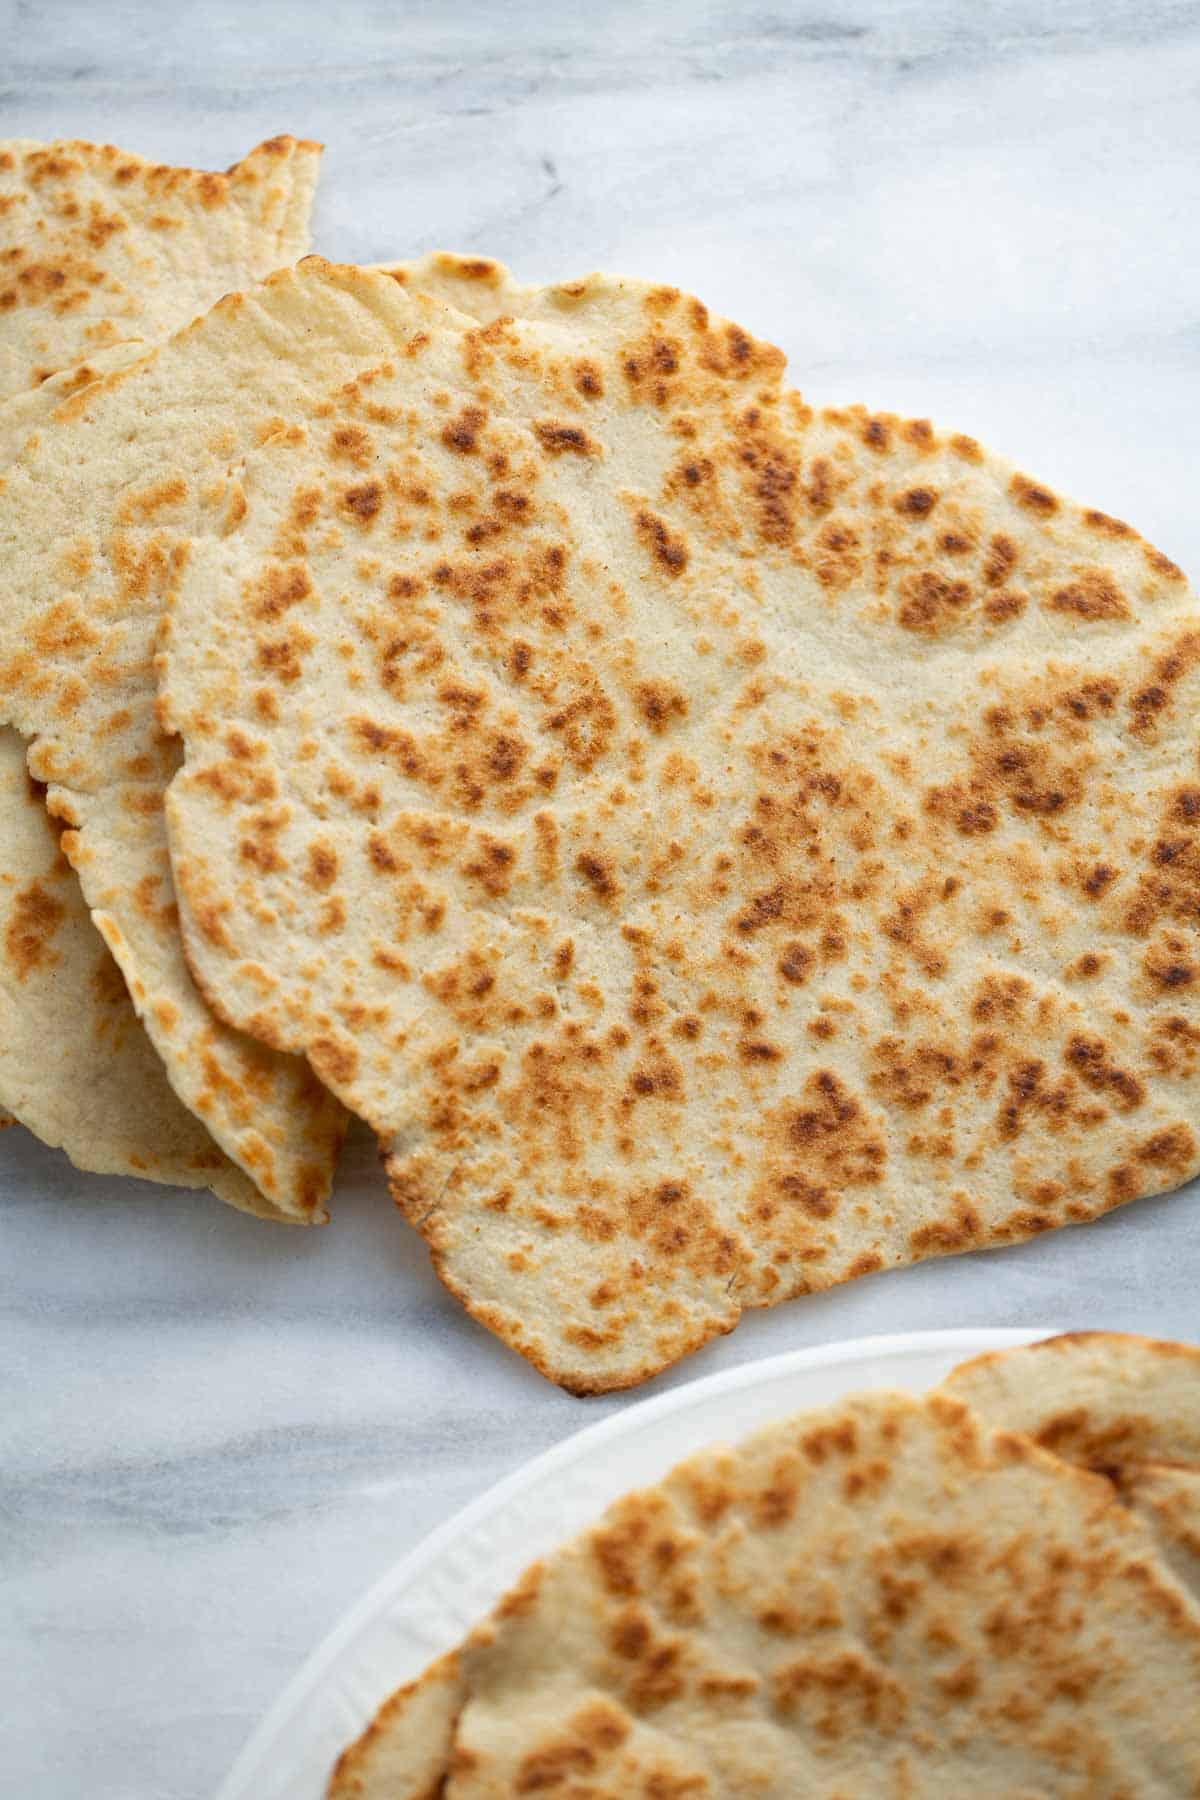 gluten-free flatbread stacked on white marble background